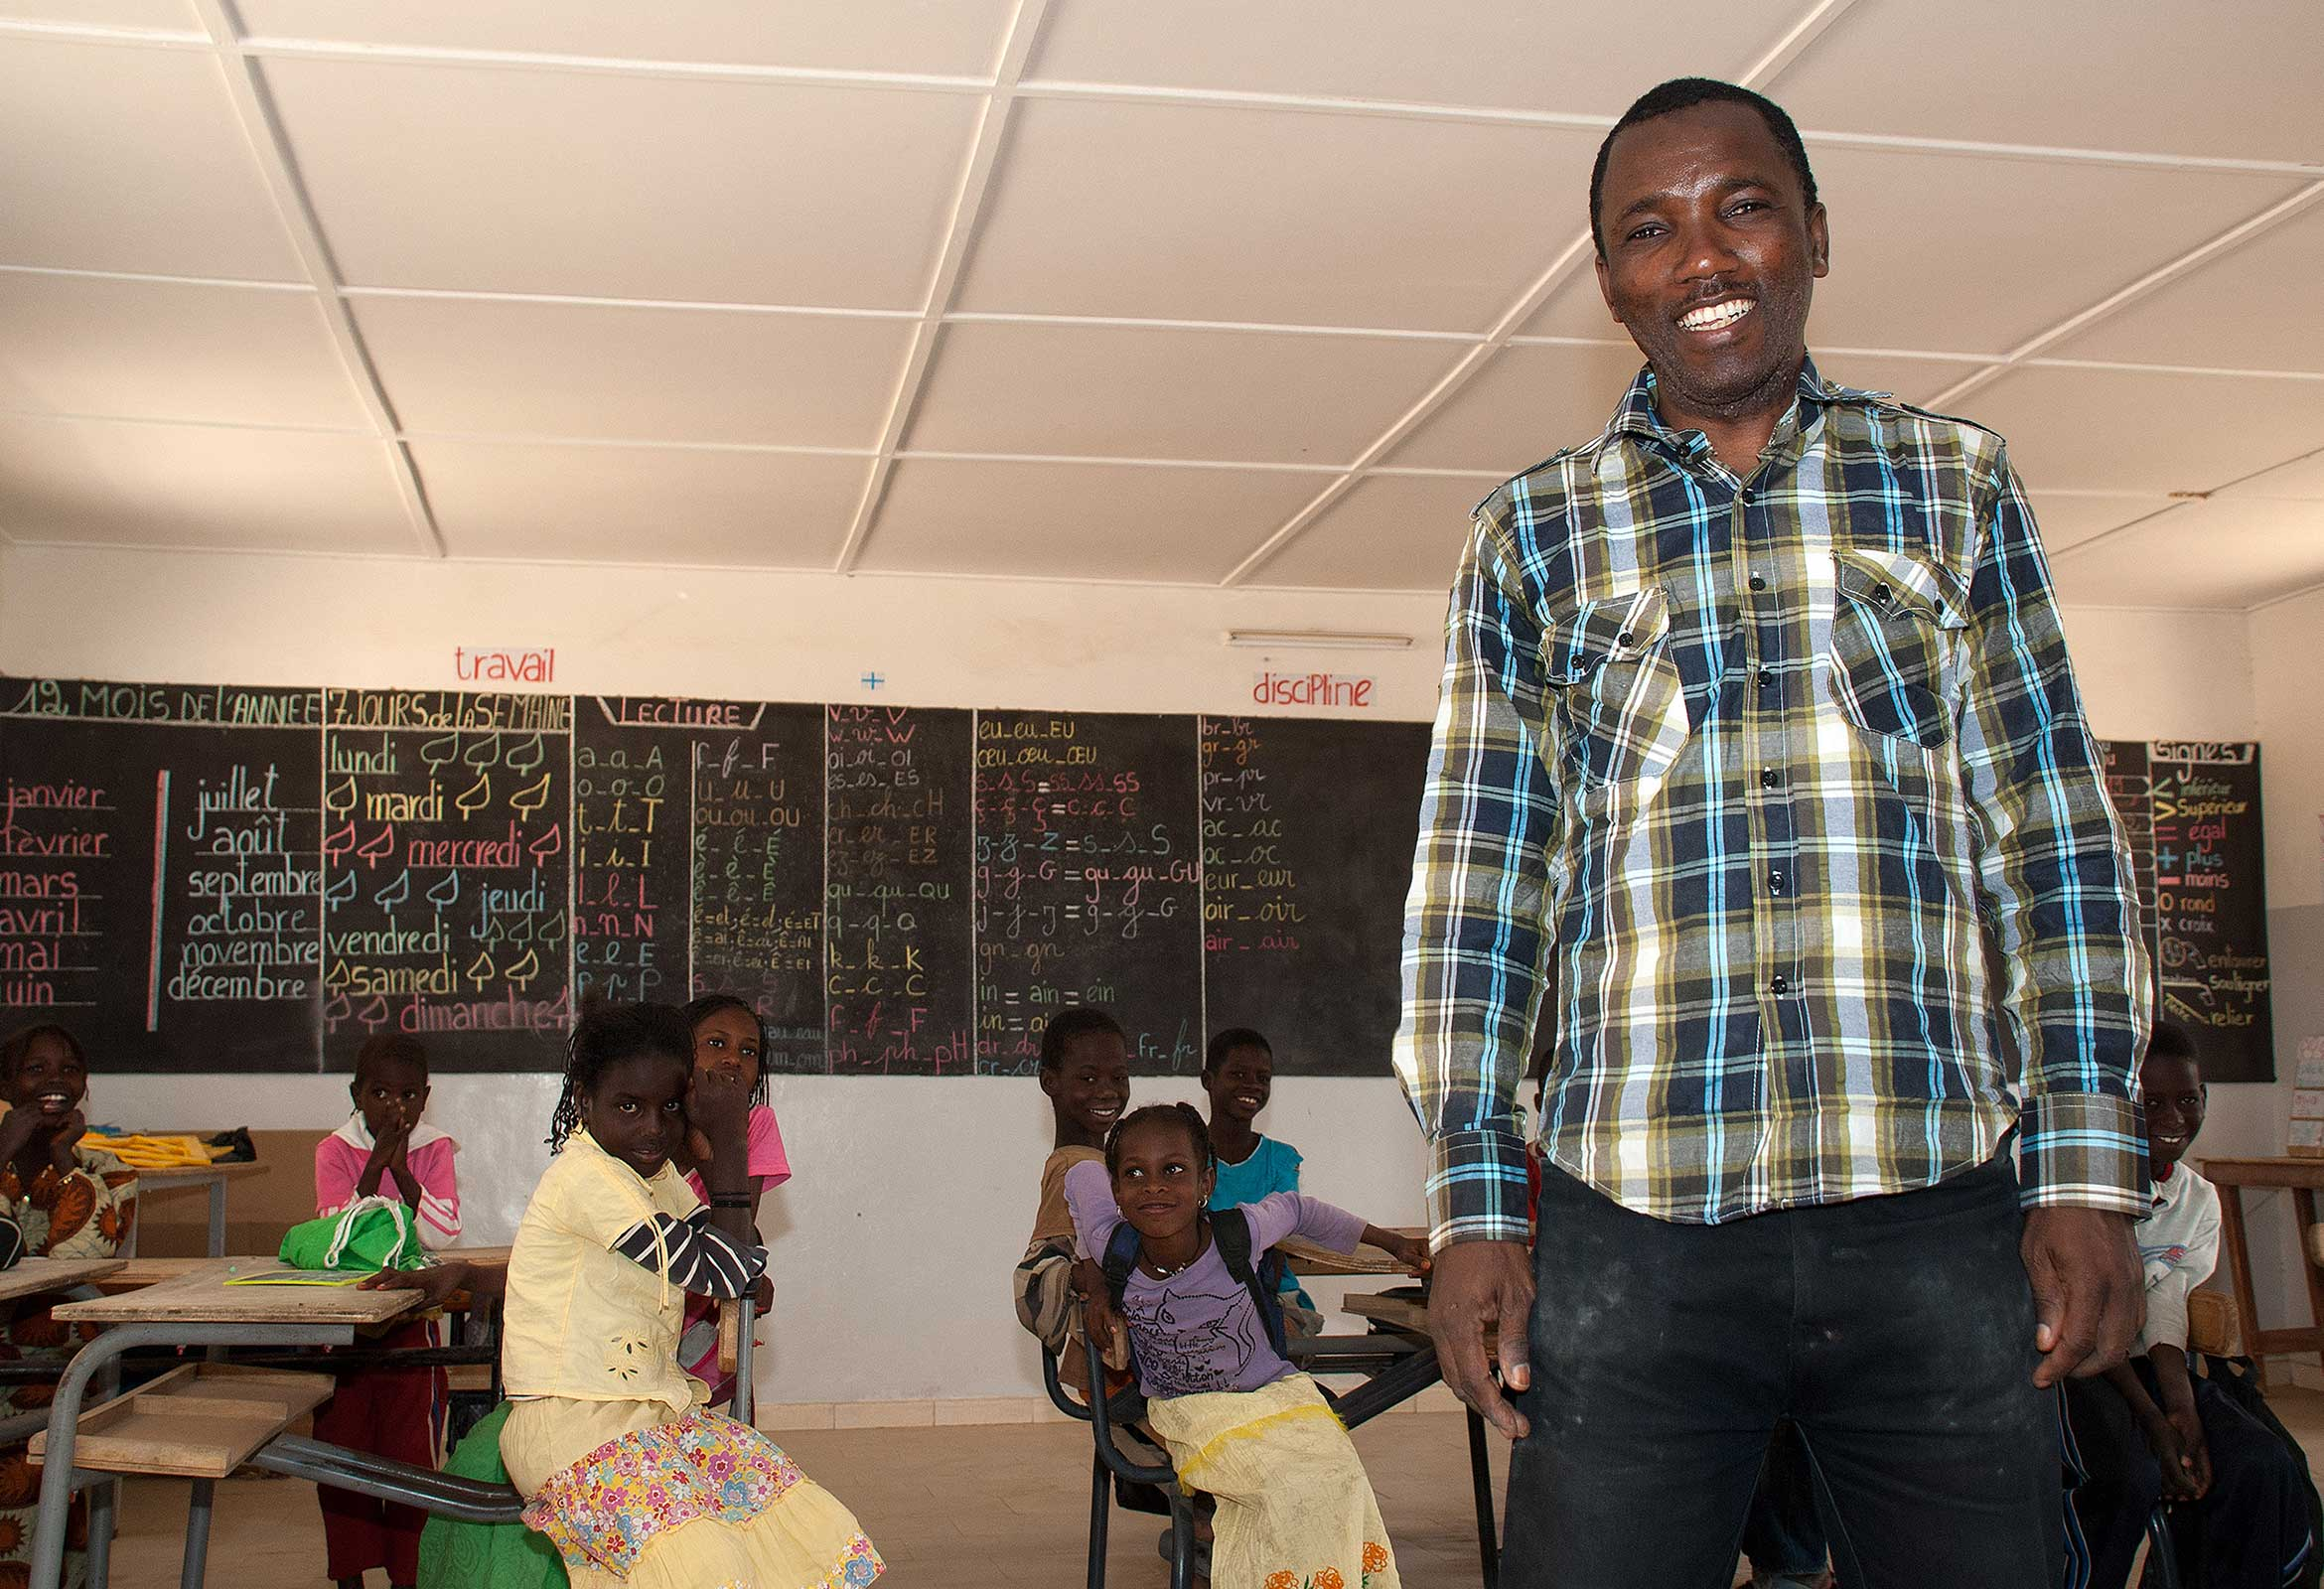 Photograph of a Senegalese teacher helped by the community work by the Barfoots SCL farm in Senegal